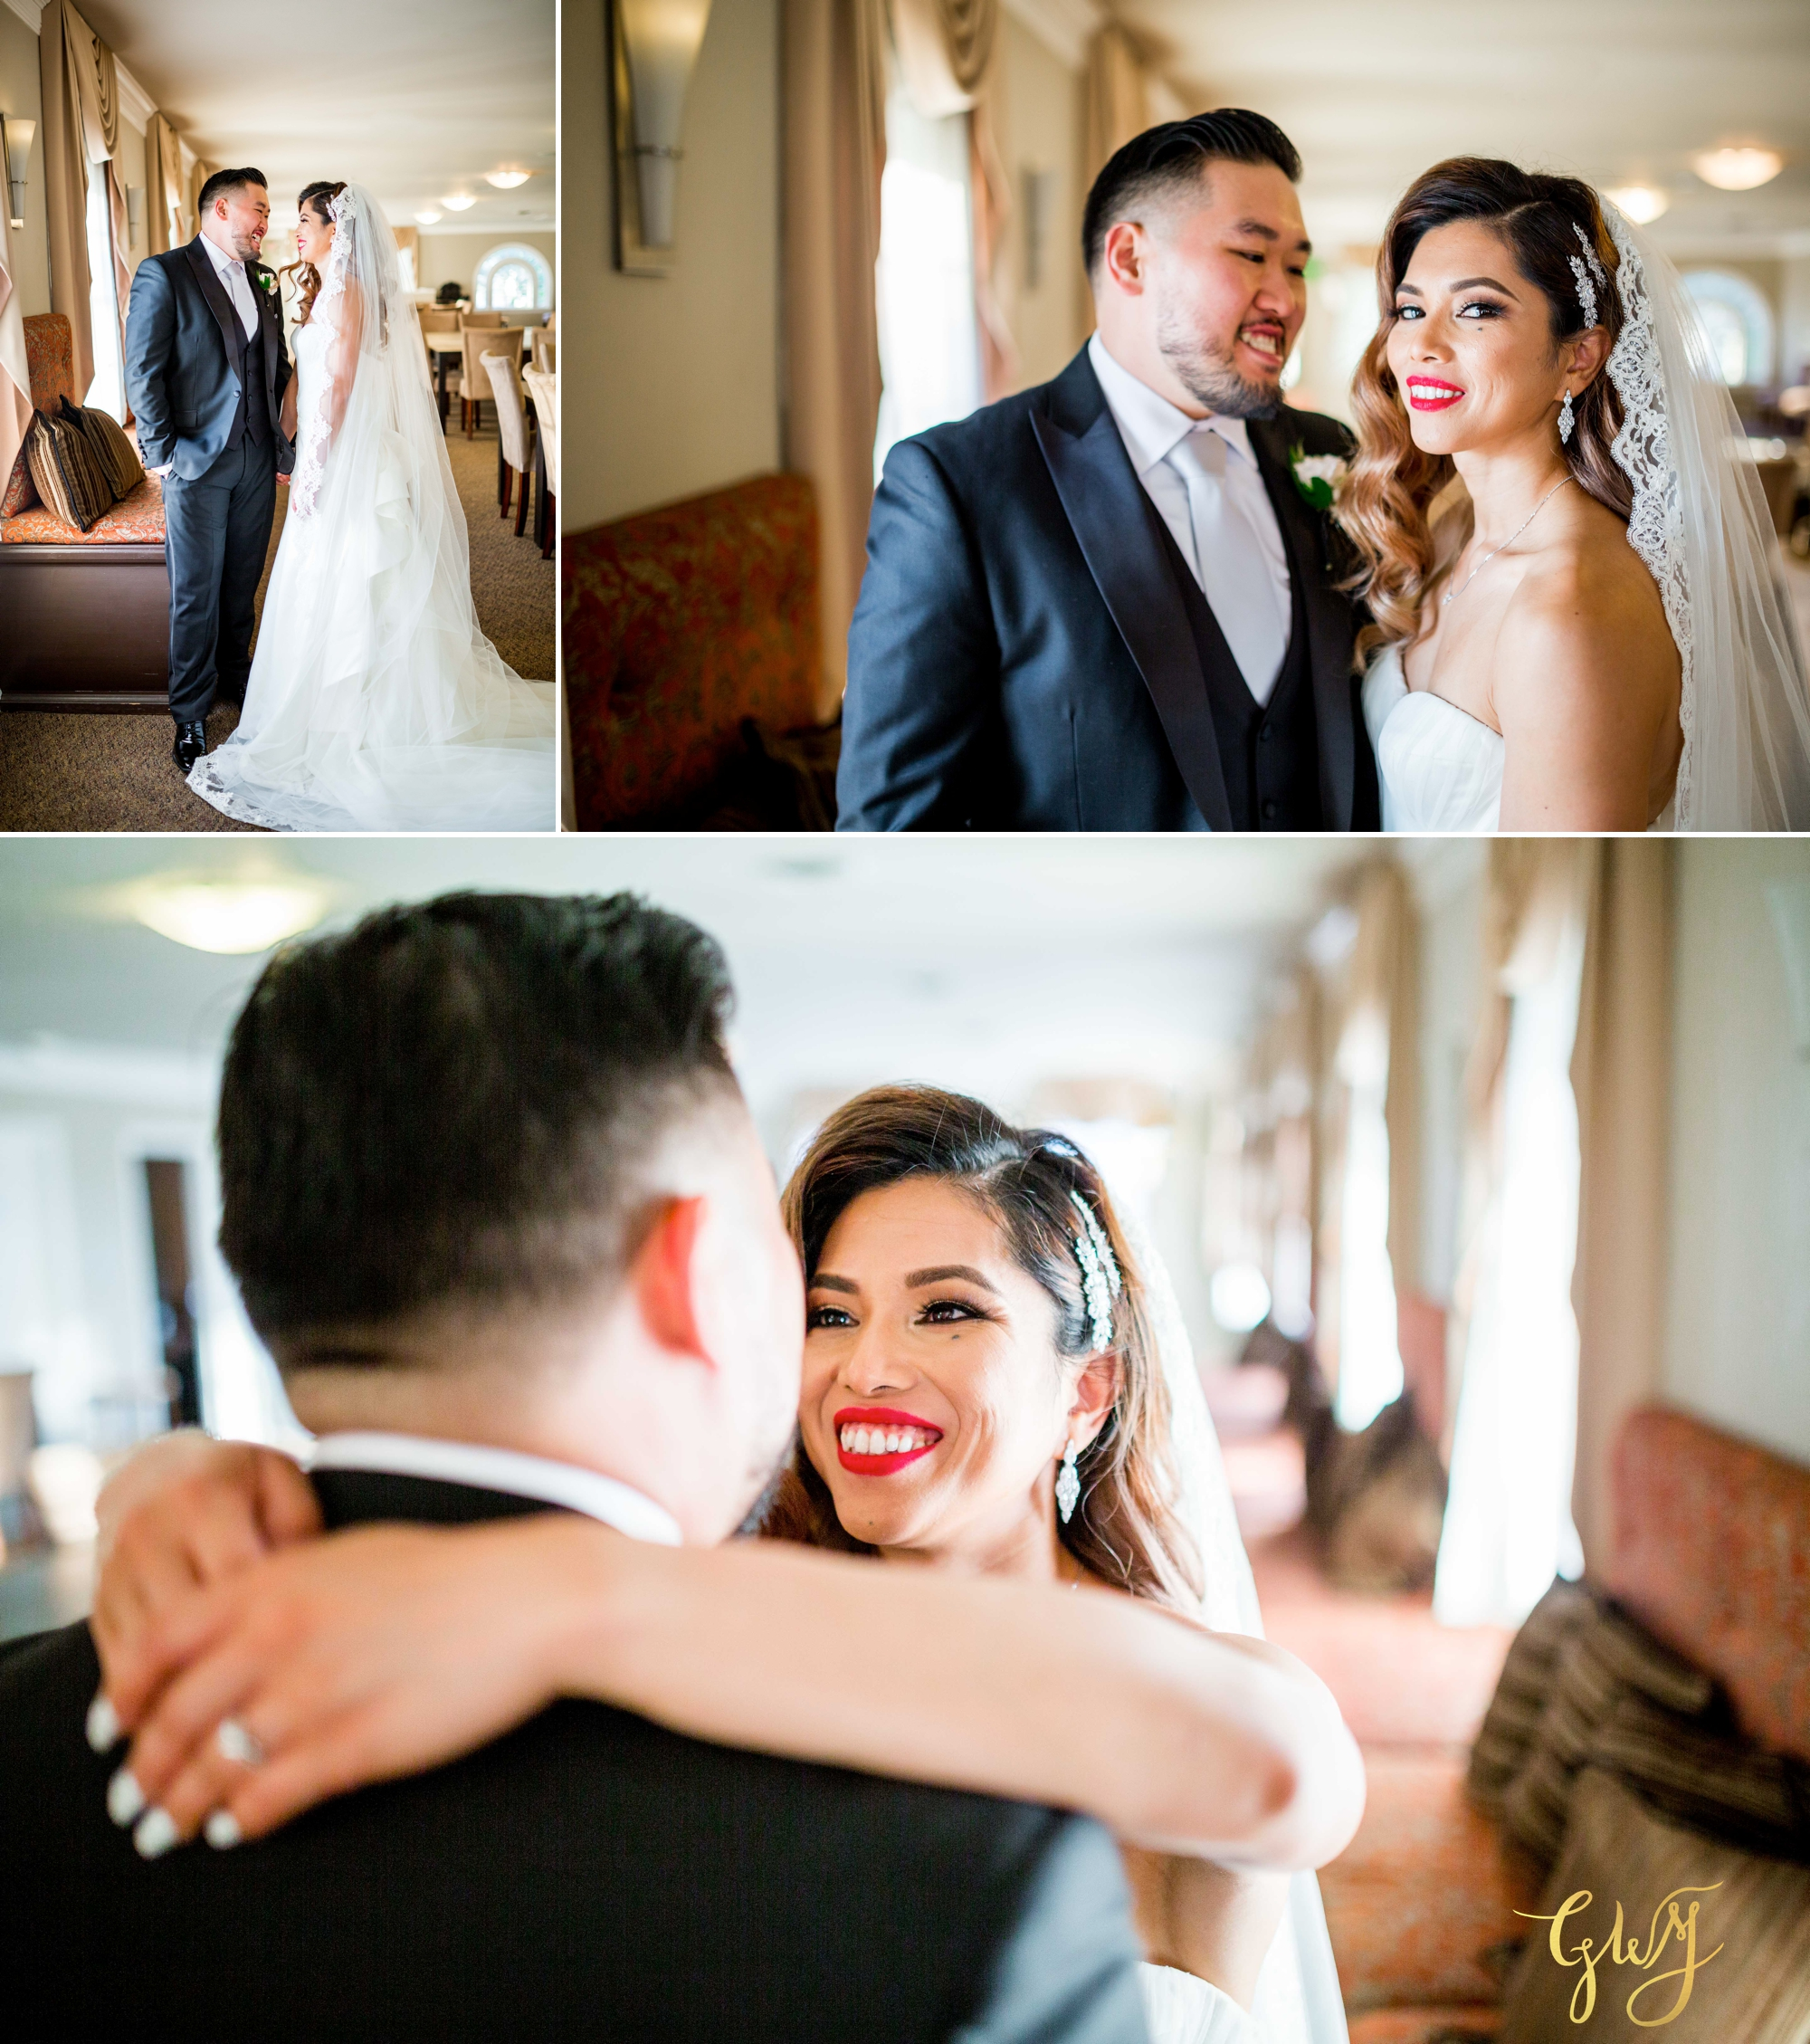 Andy + Caselyn's White House Event Center Orange County Spring Wedding by Glass Woods Media 34.jpg